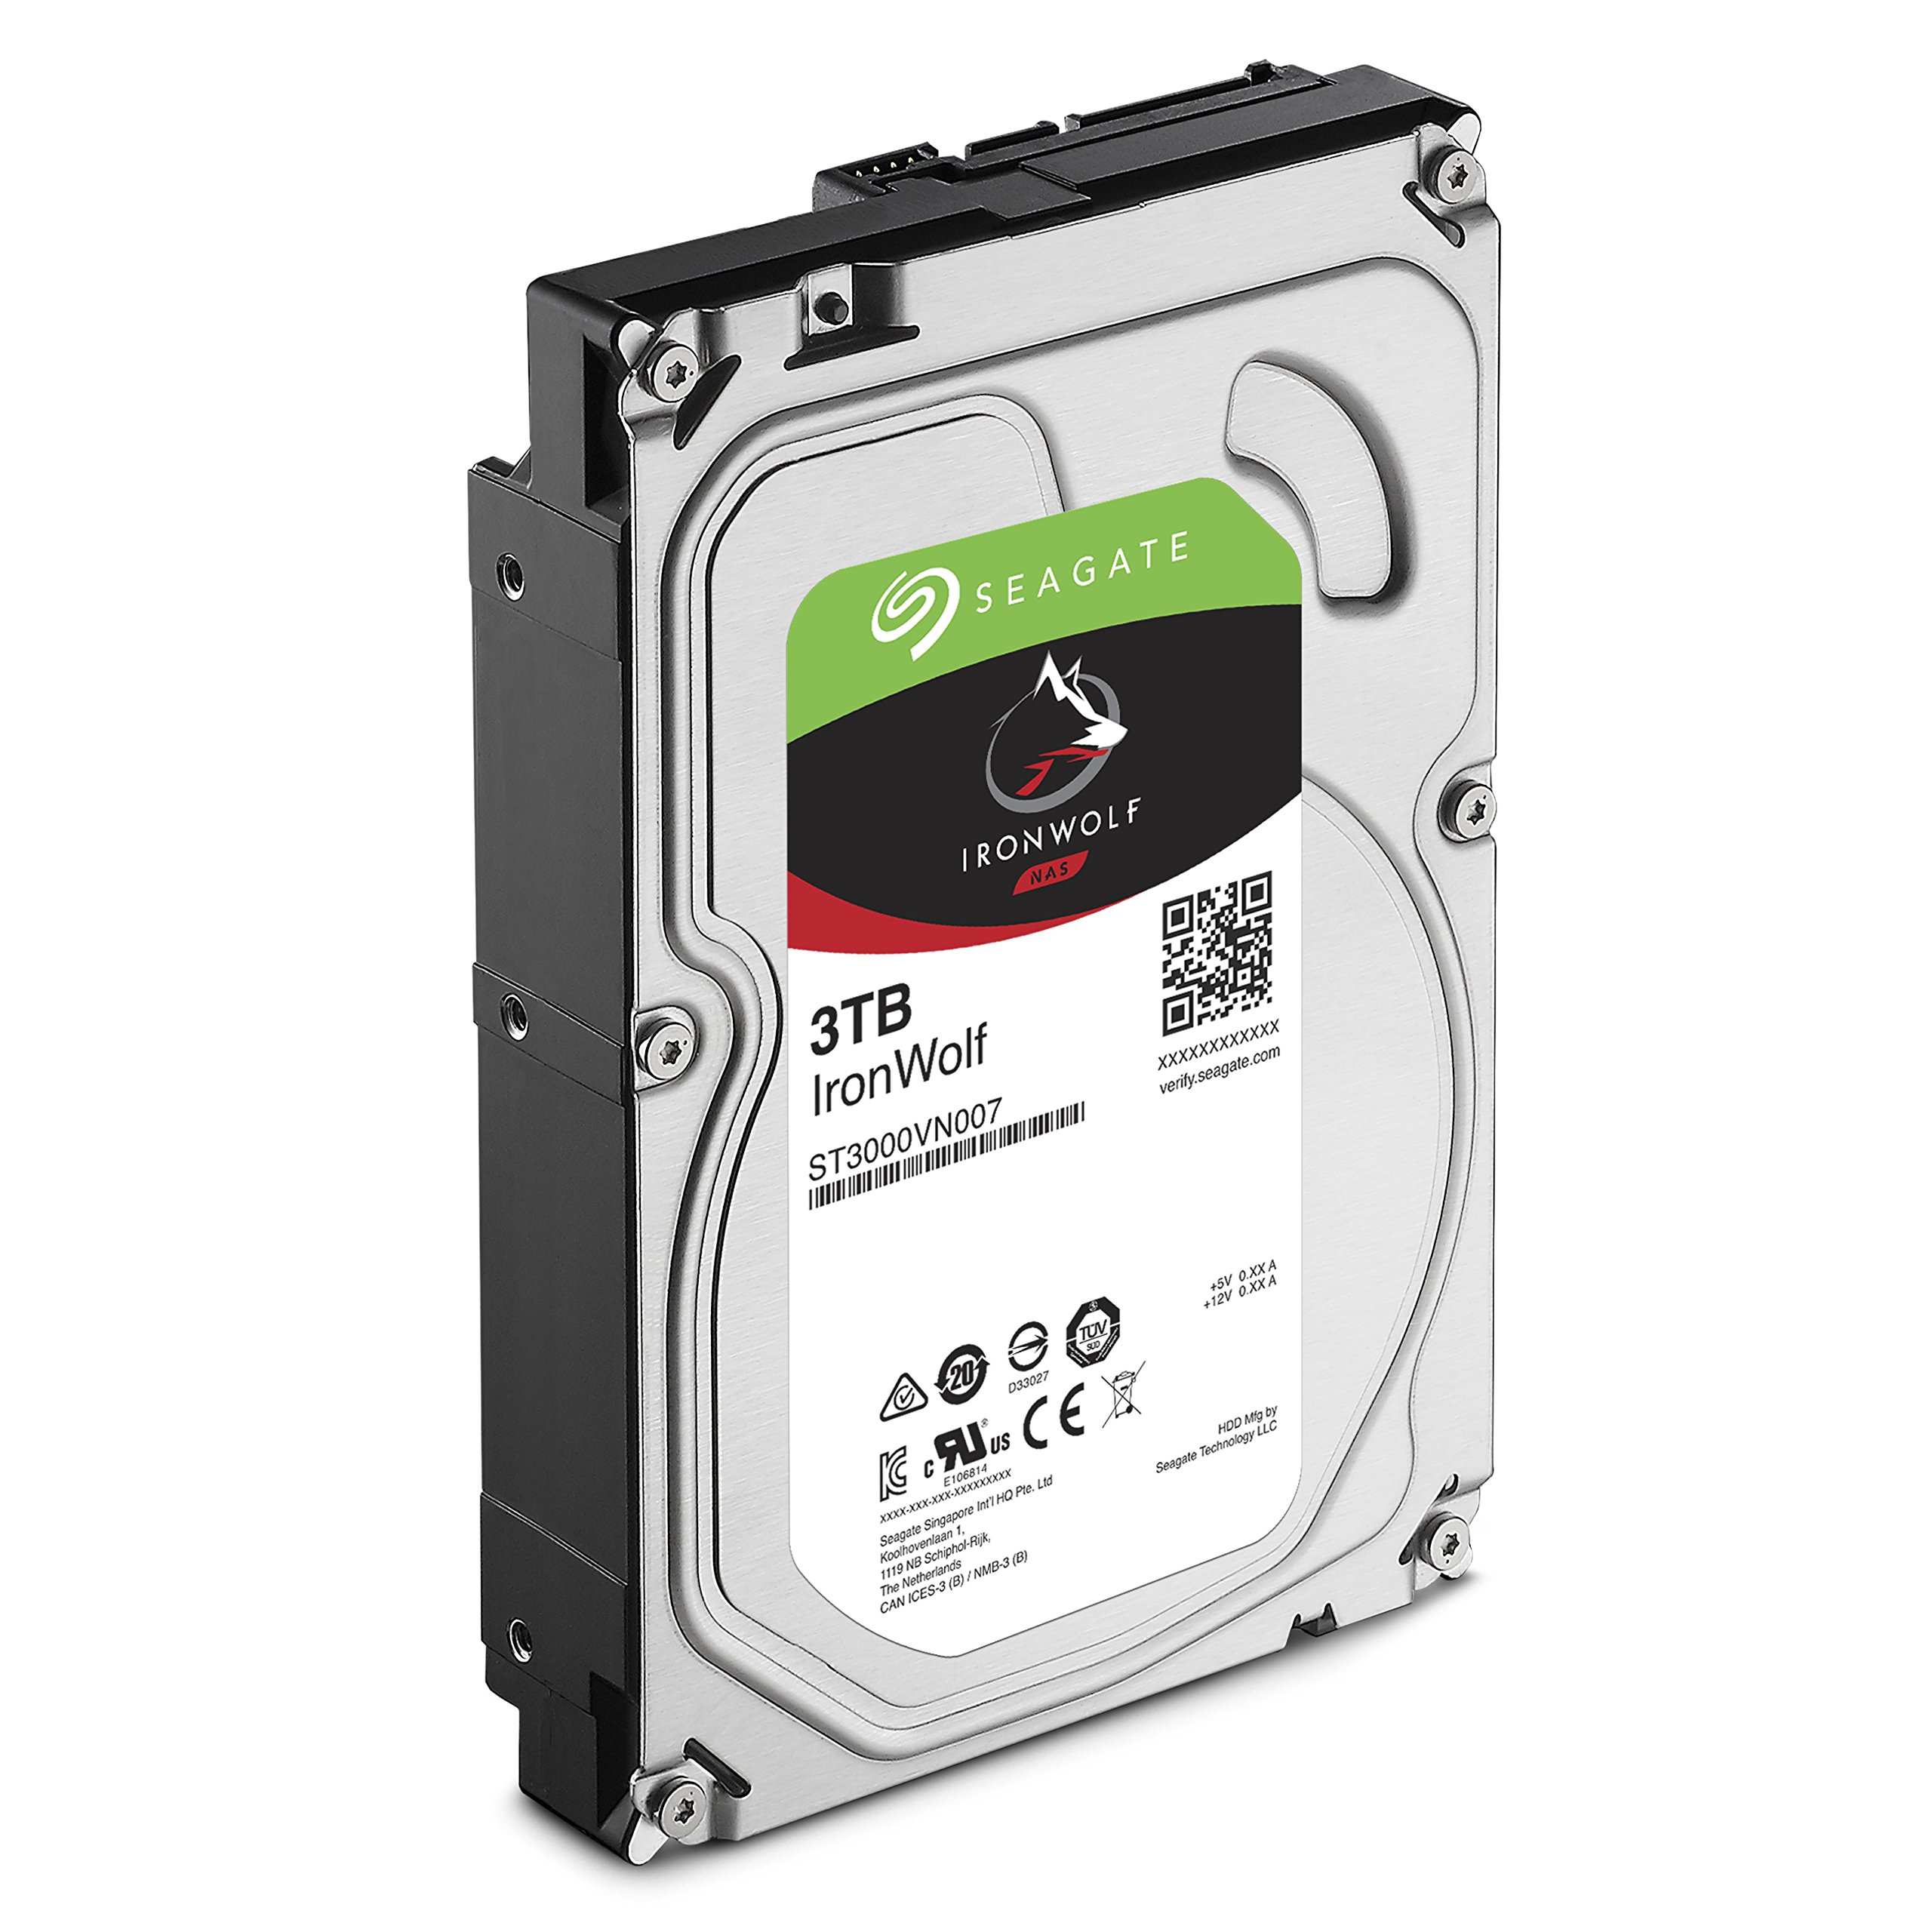 Seagate IronWolf 3 TB NAS RAID Internal Hard Drive - 5,900 RPM SATA 6 Gb/s 3.5-inch - Frustration Free Packaging (ST3000VN007) by Seagate (Image #3)